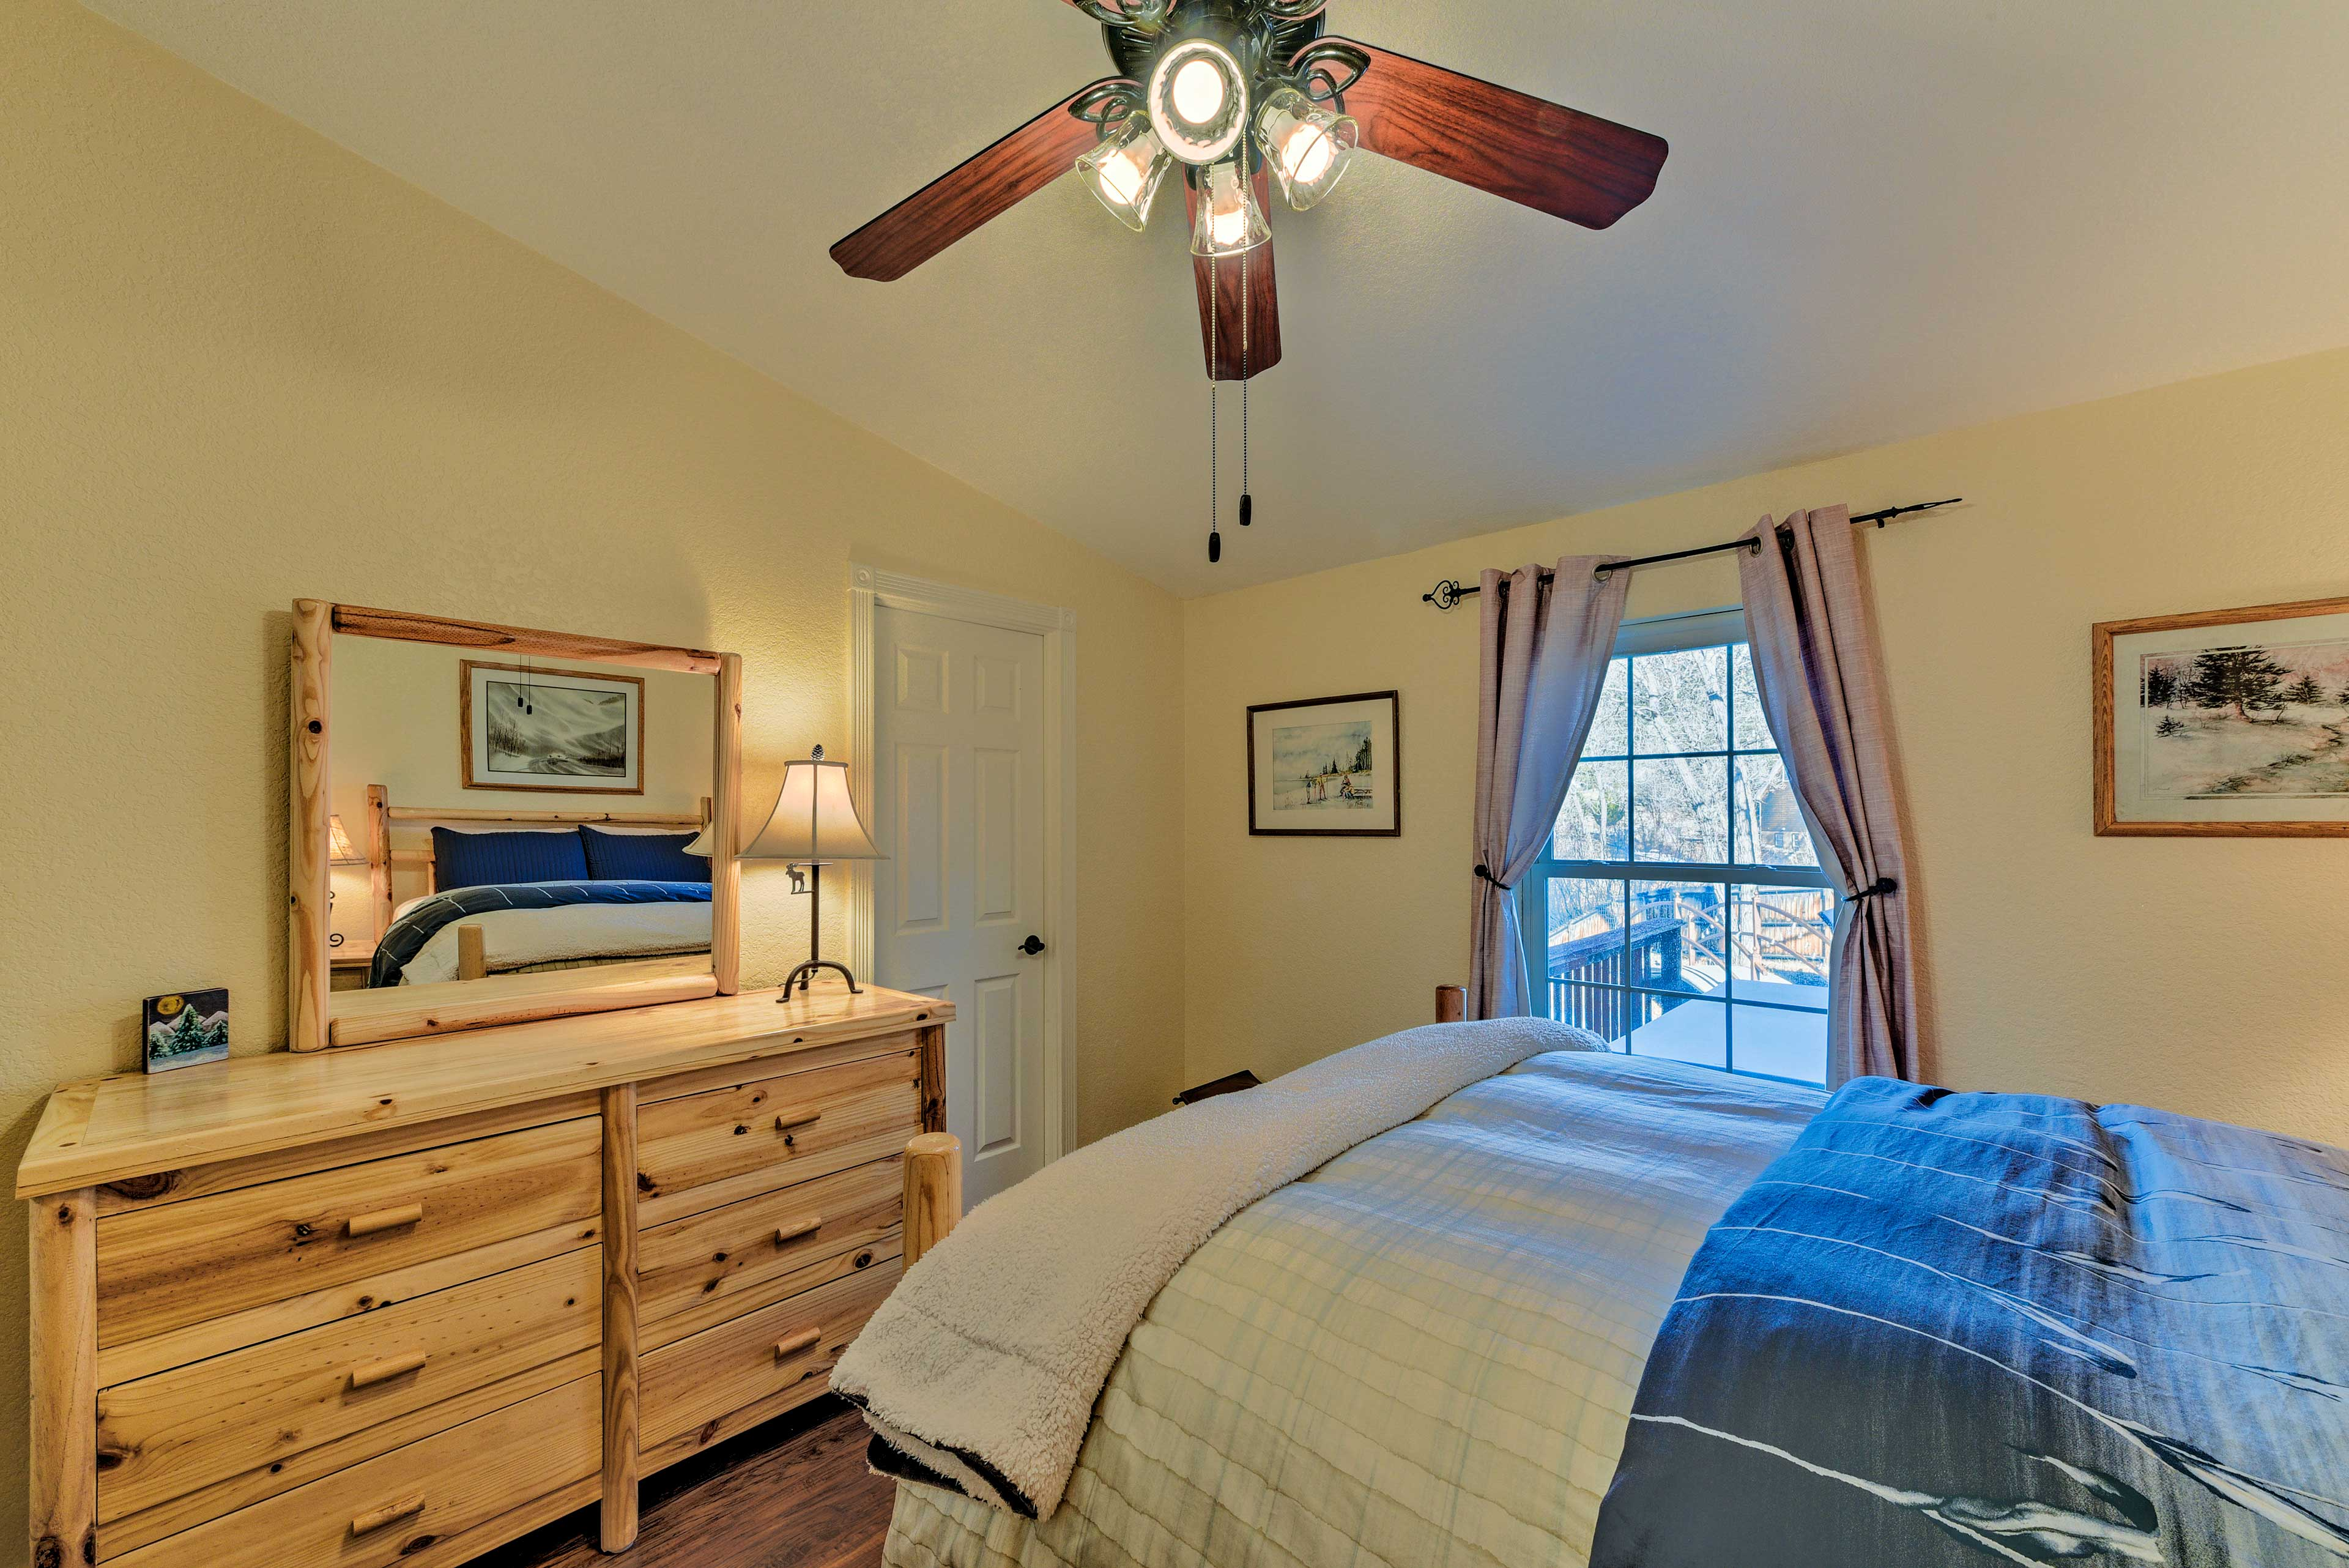 The second bedroom includes a large wood dresser & deck-facing picture window.